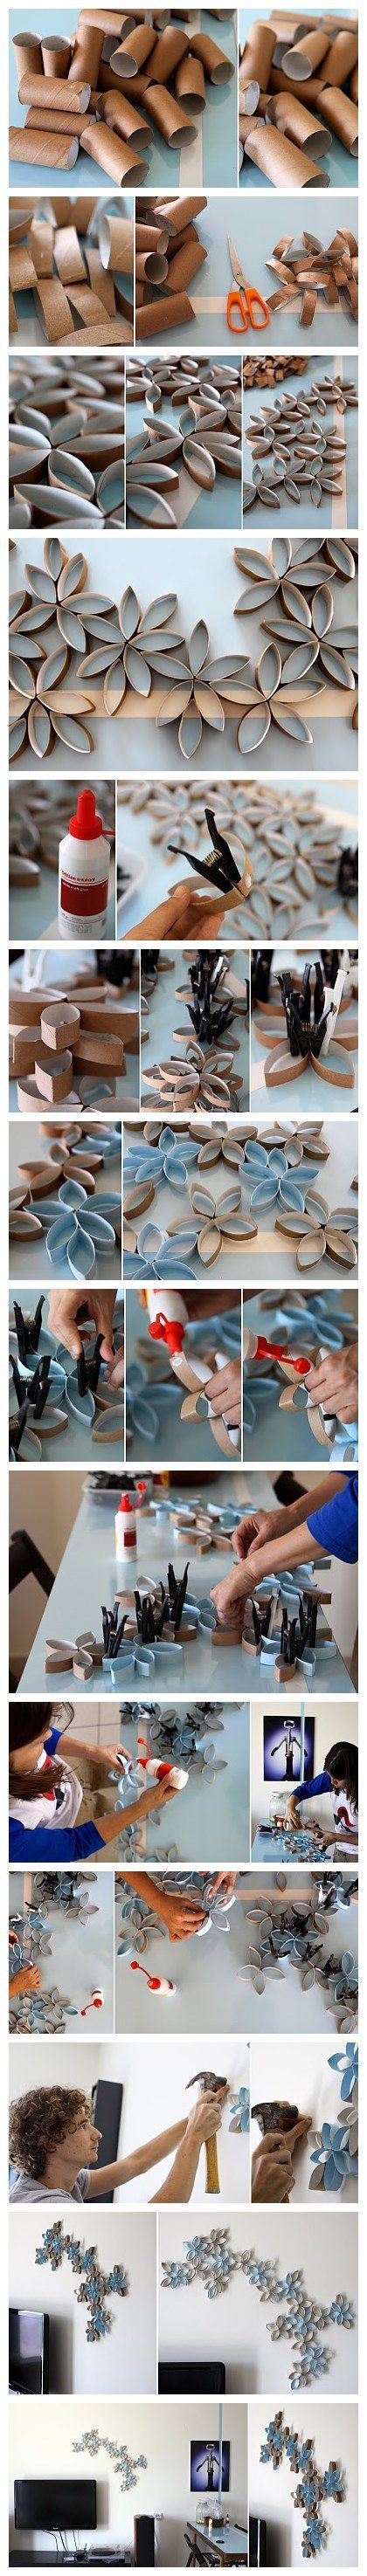 How to DIY toilet paper roll wall art project